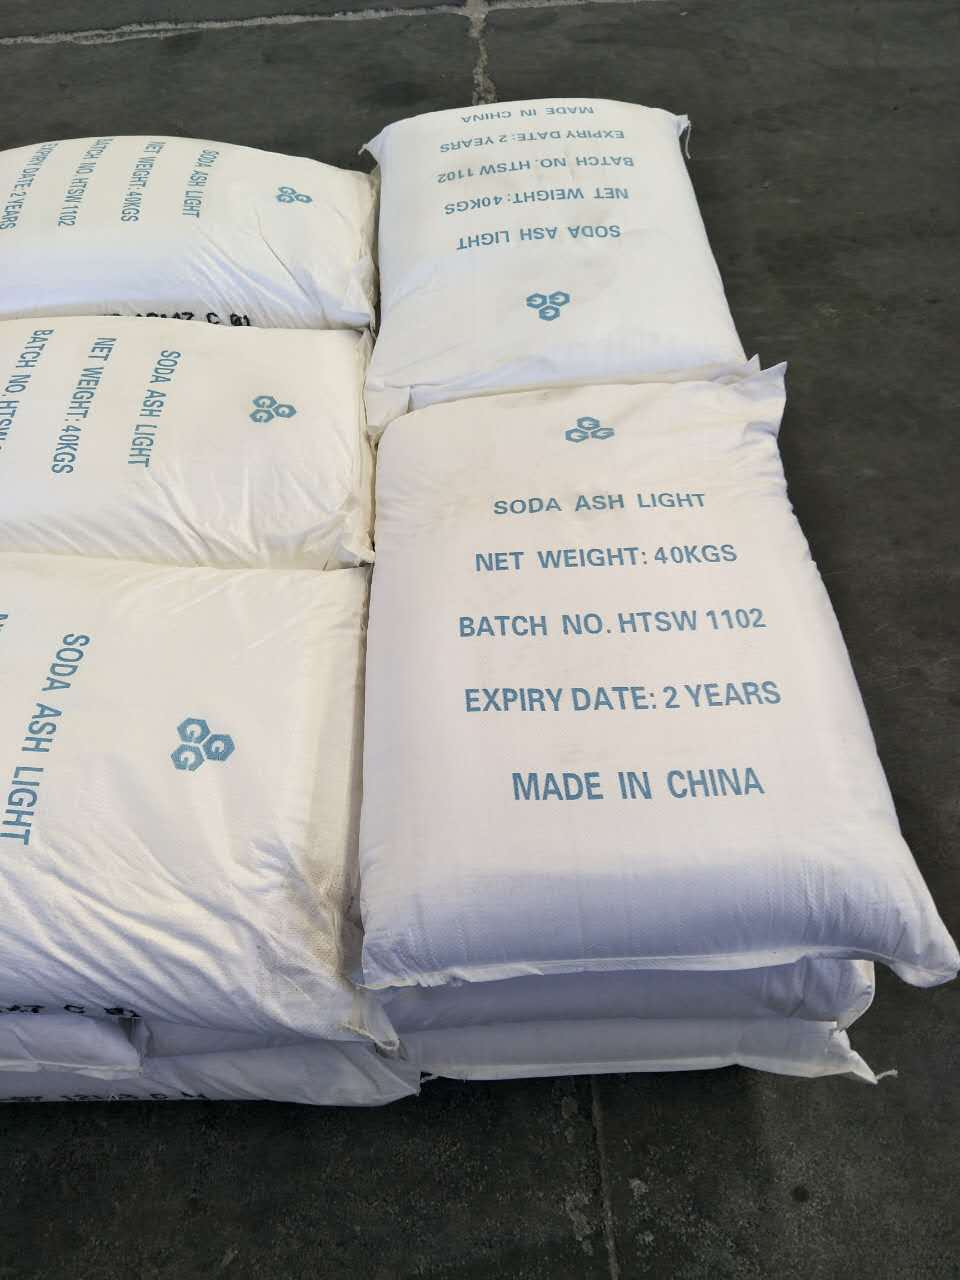 the packing of soda ash light